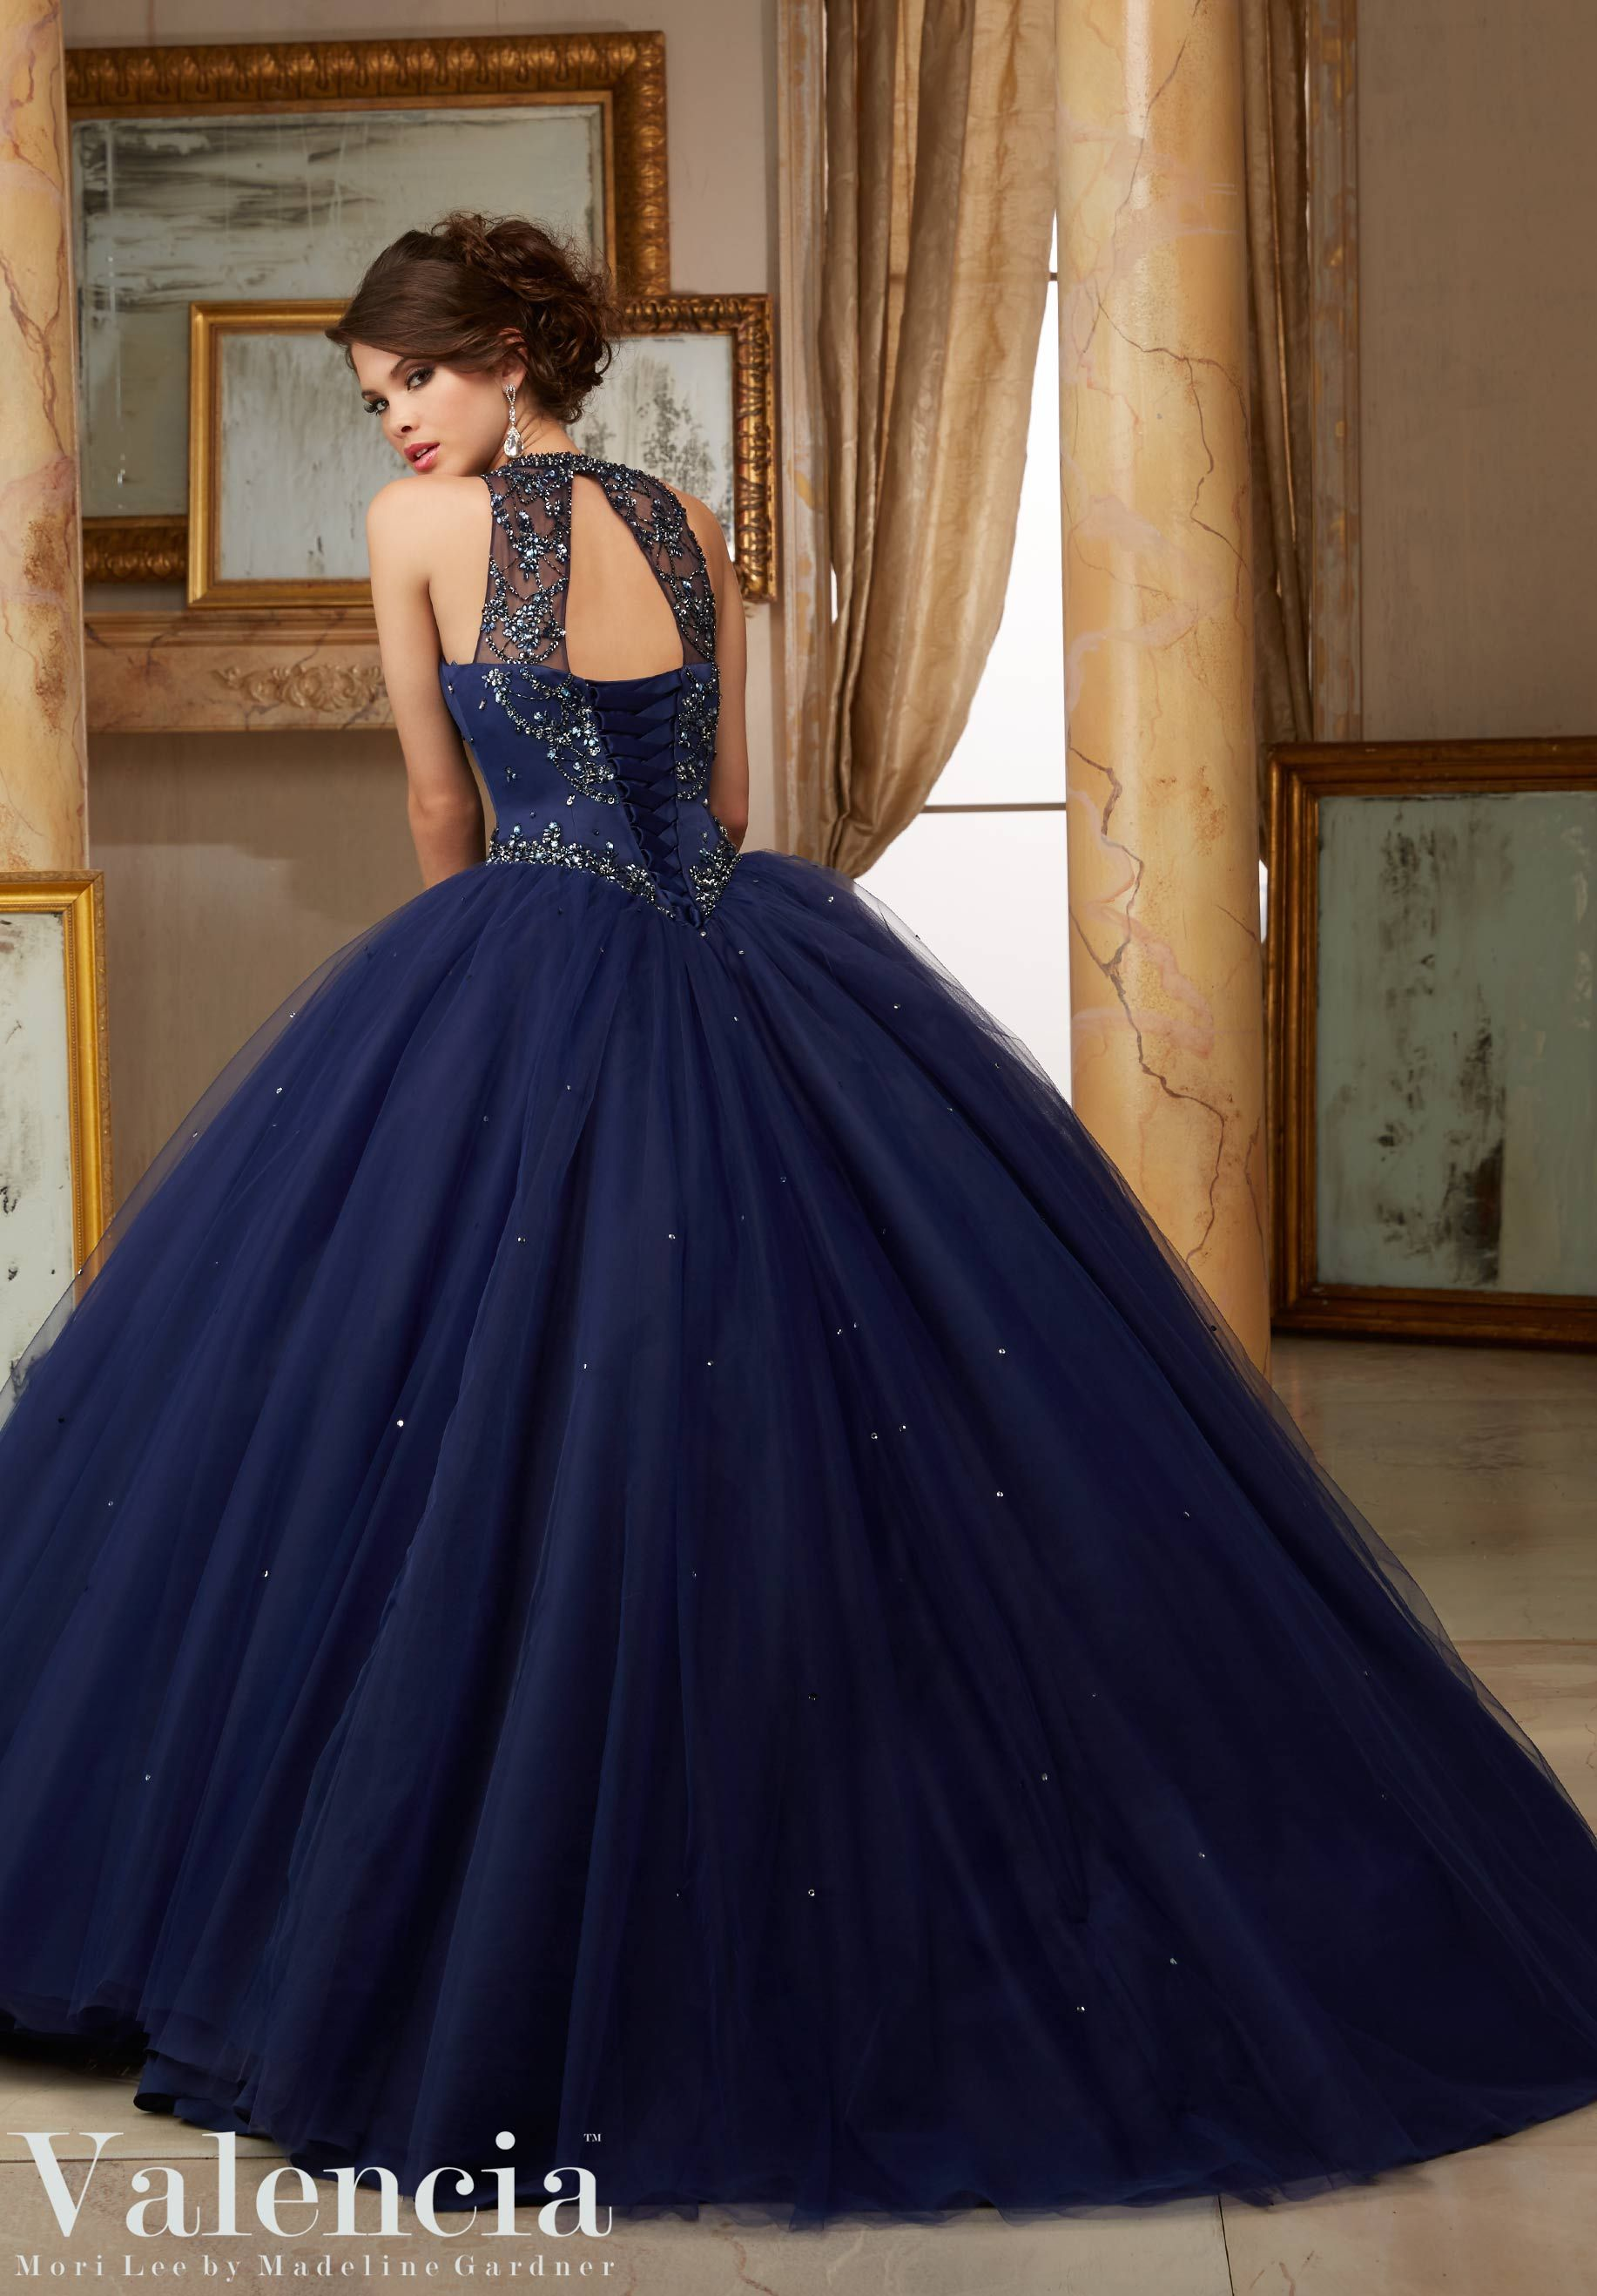 Jeweled beaded satin bodice on tulle ball gown quinceañera dress